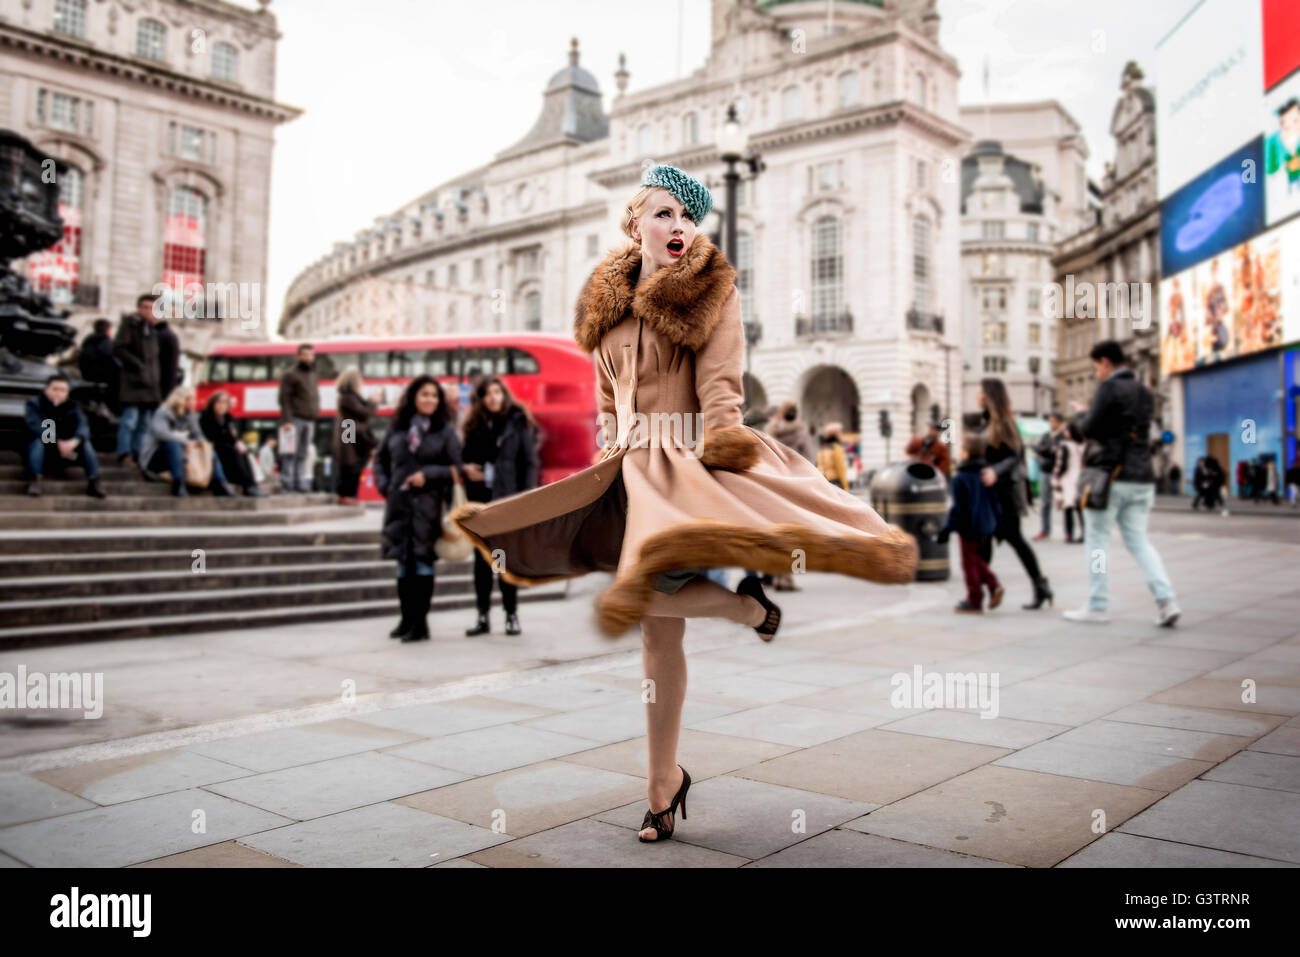 A stylish young woman dressed in 1930s style clothing twirling around by the statue of Eros at Piccadilly Circus. - Stock Image